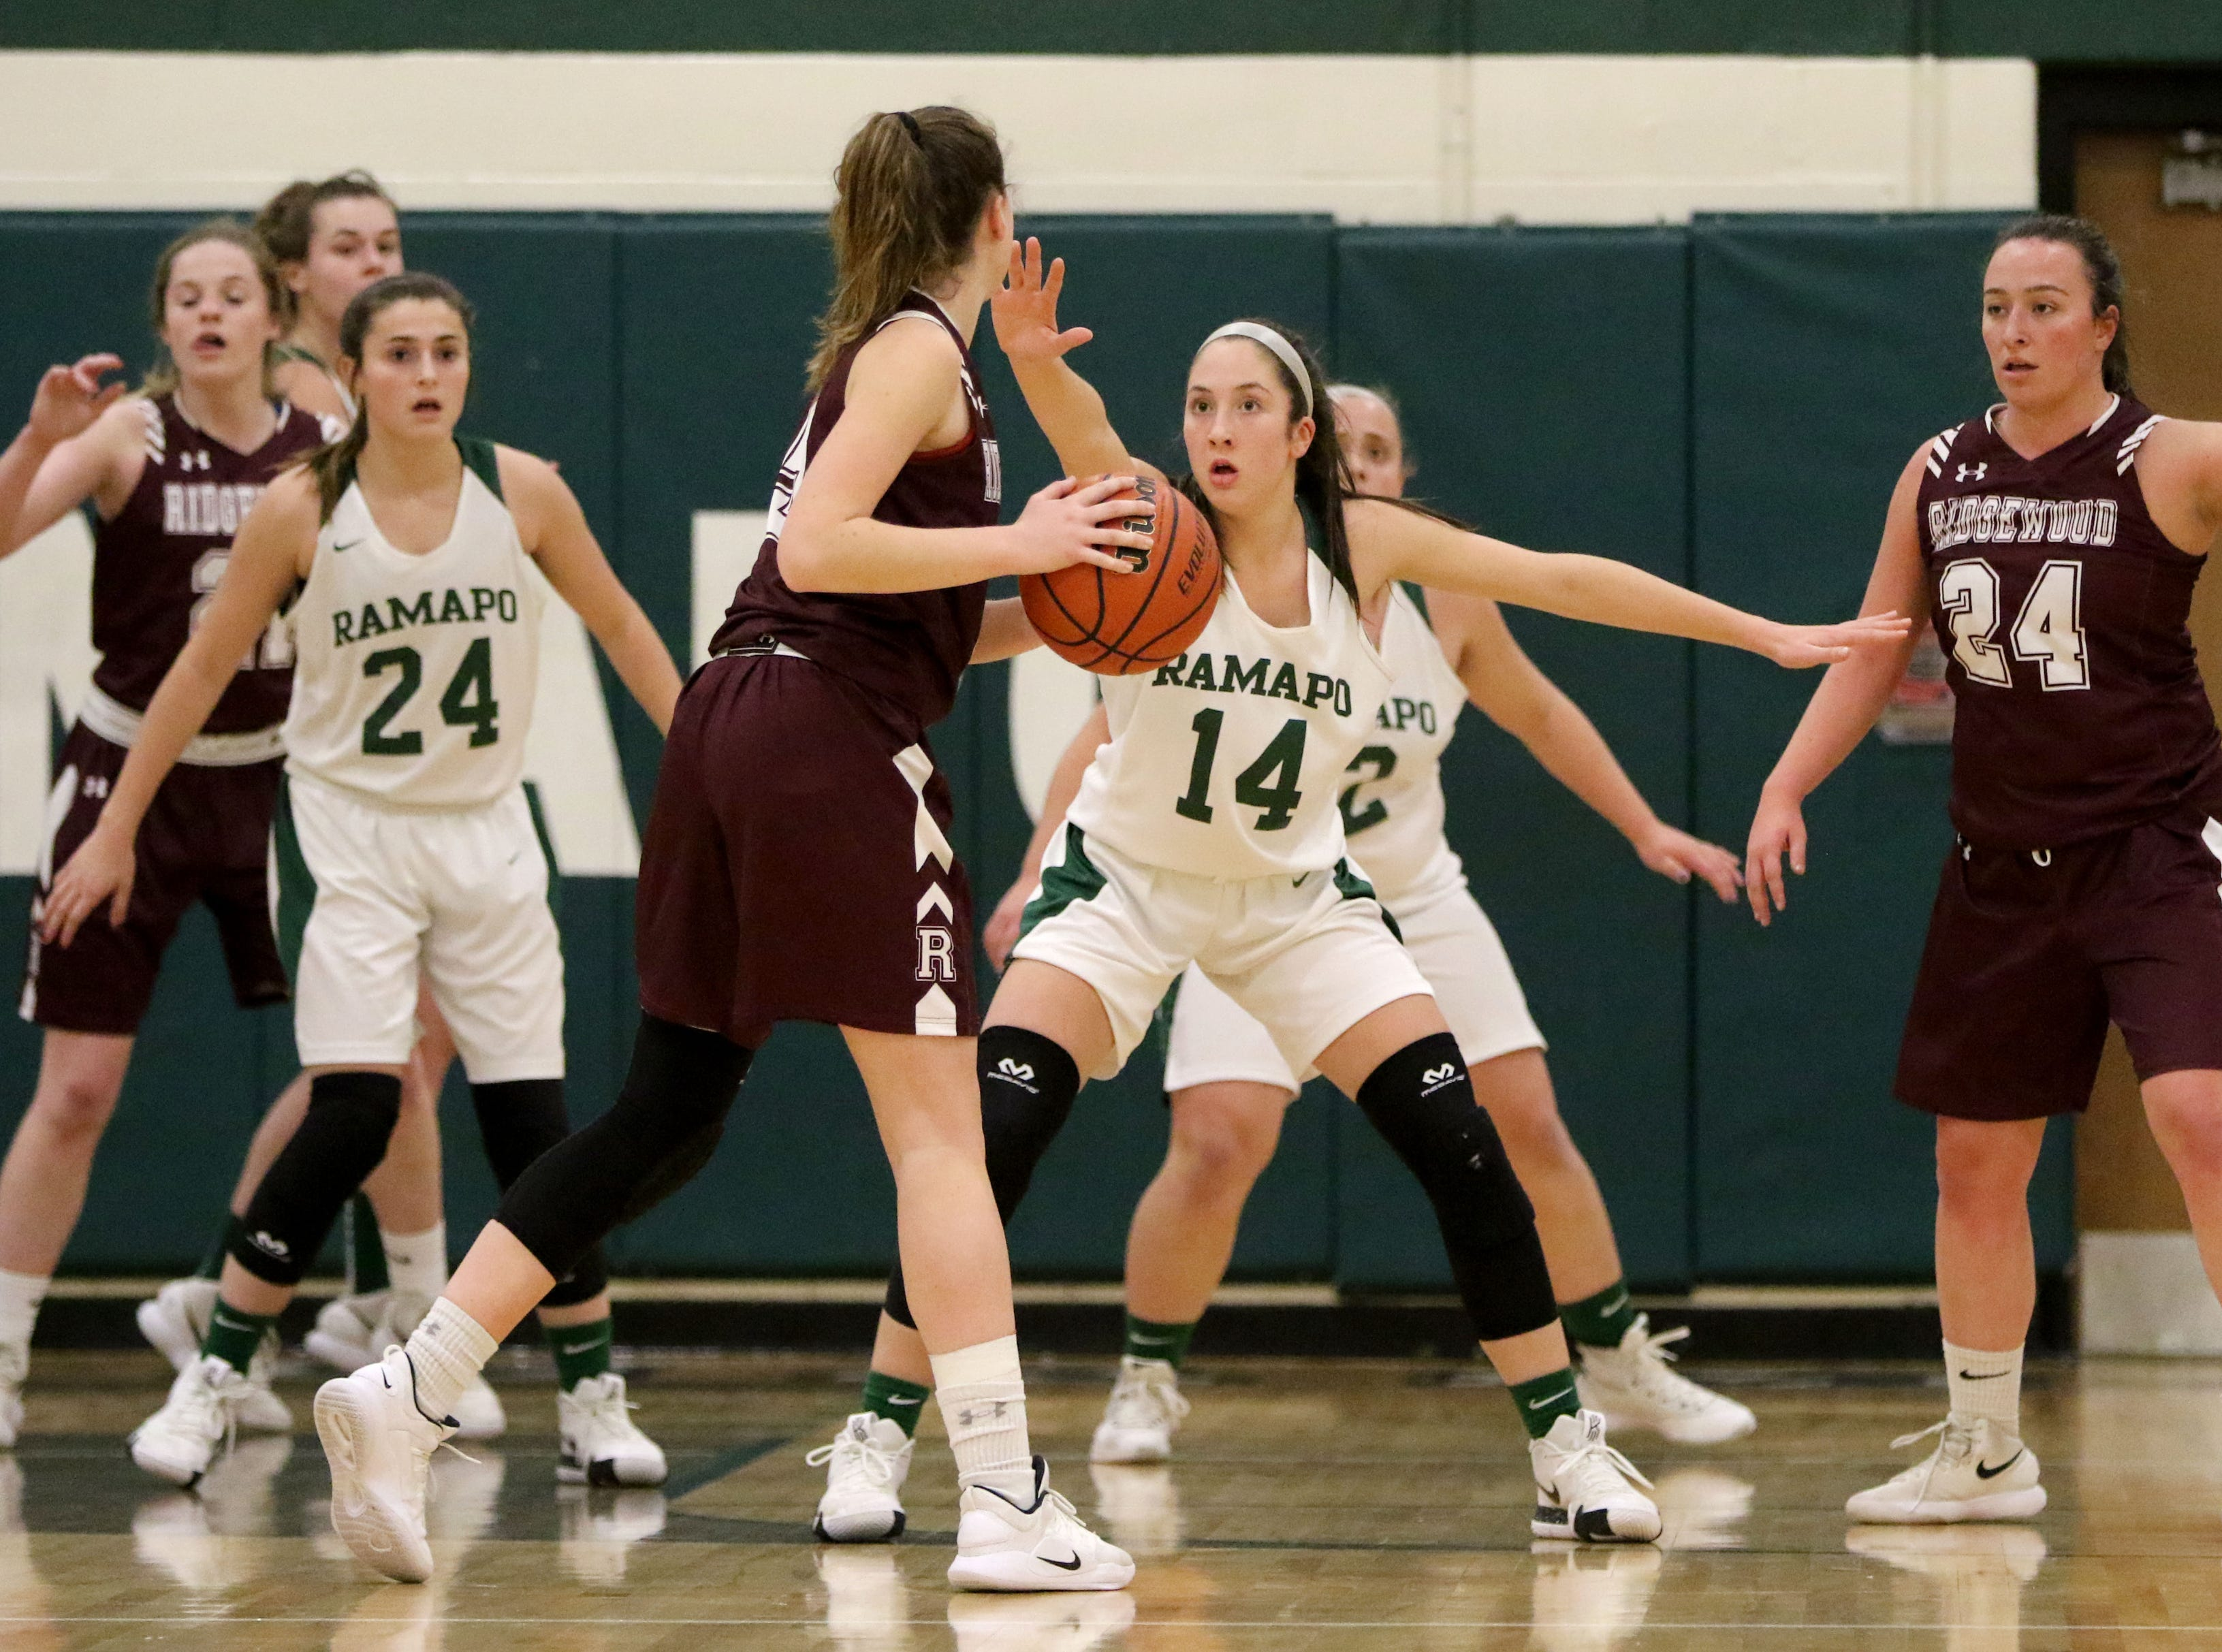 Julia Corella, of Ramapo, plays defense against Ridgewood, Thursday, January 10, 2019.